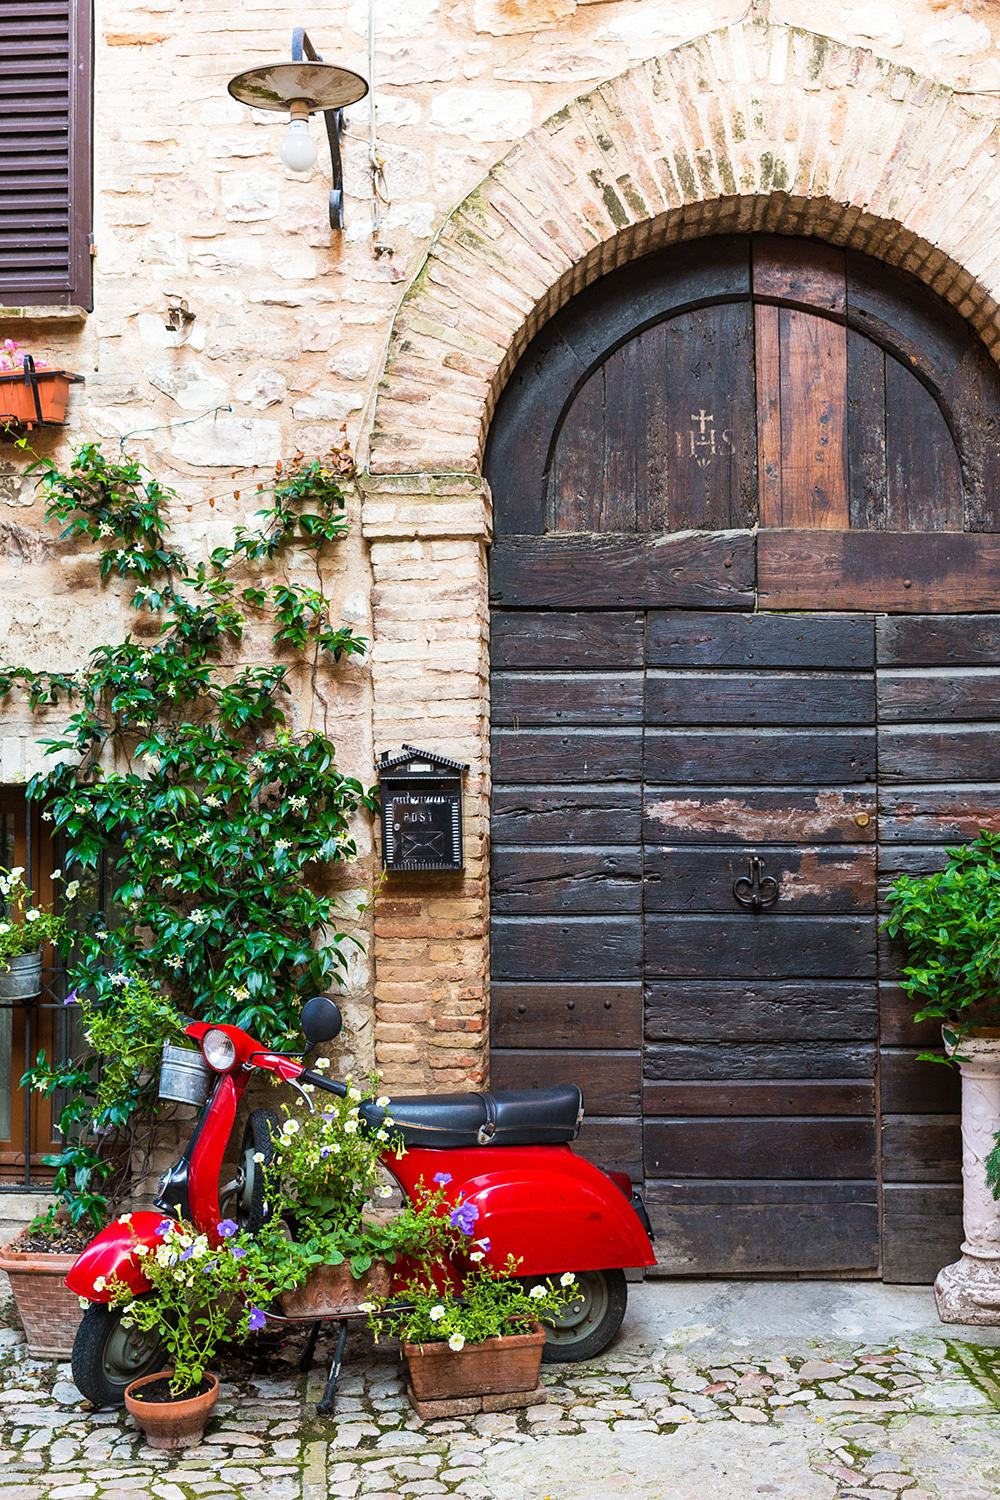 A Vespa in a beautiful corner in Italy | You have to read these travel tips before visiting Italy!